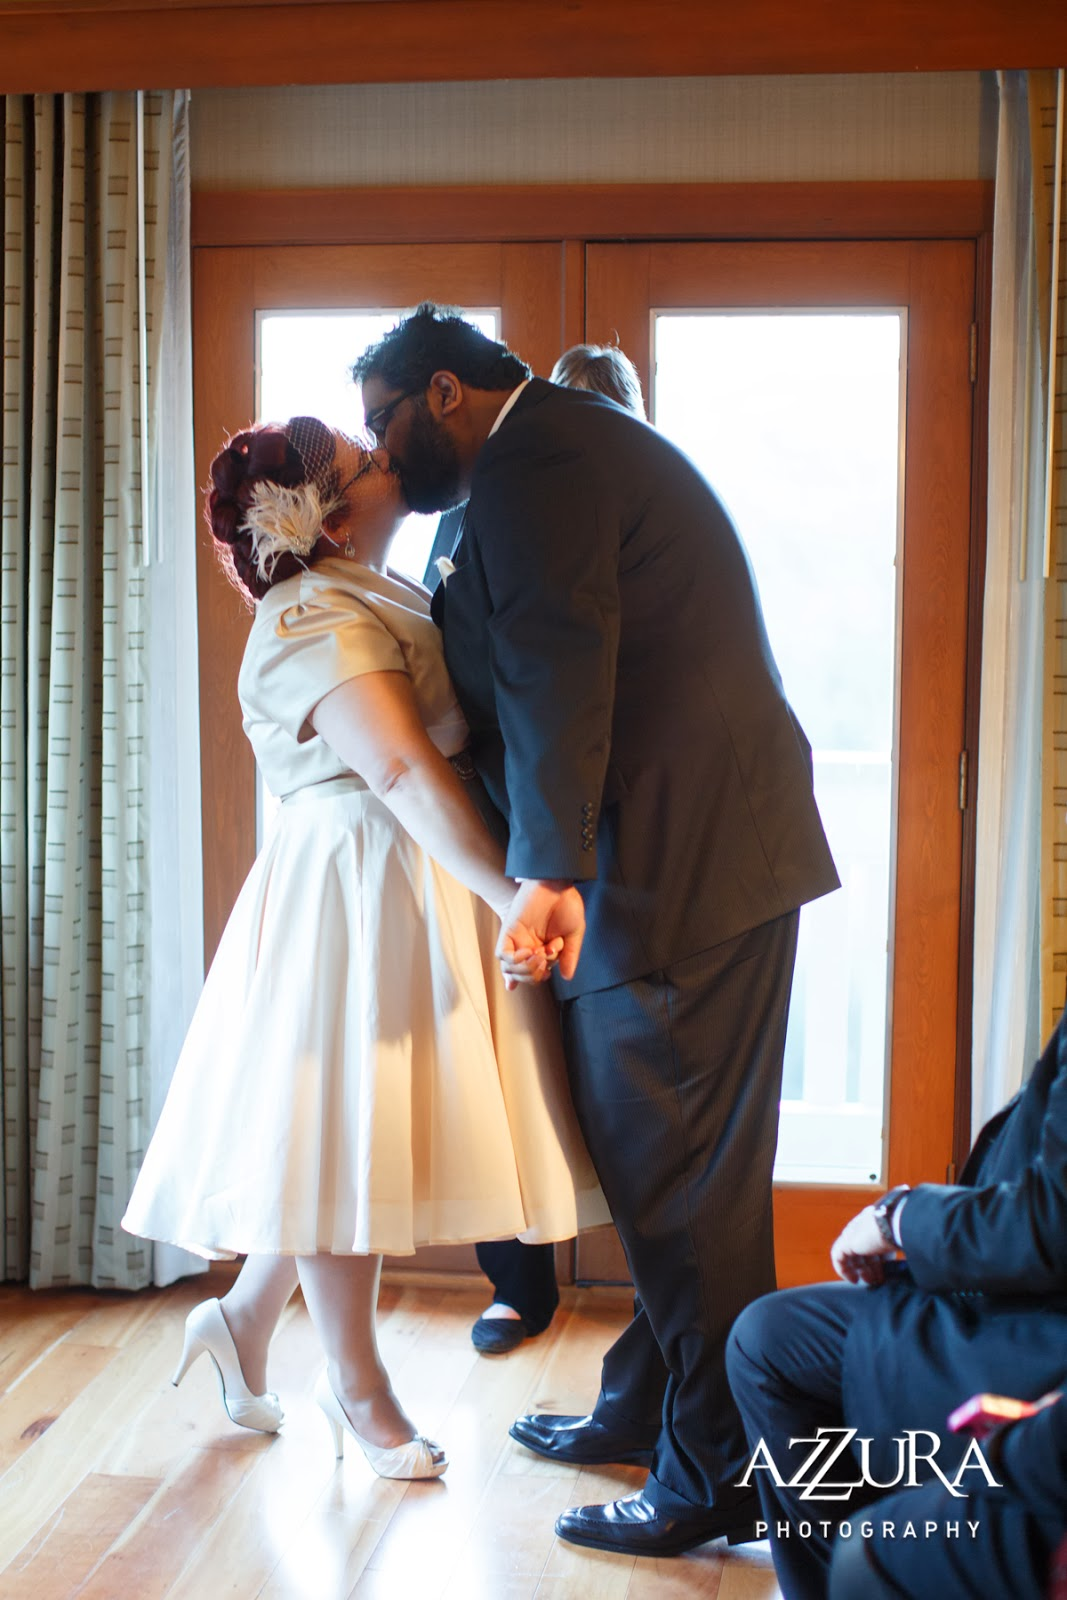 Time to kiss! Patricia Stimac, Seattle Wedding Officiant